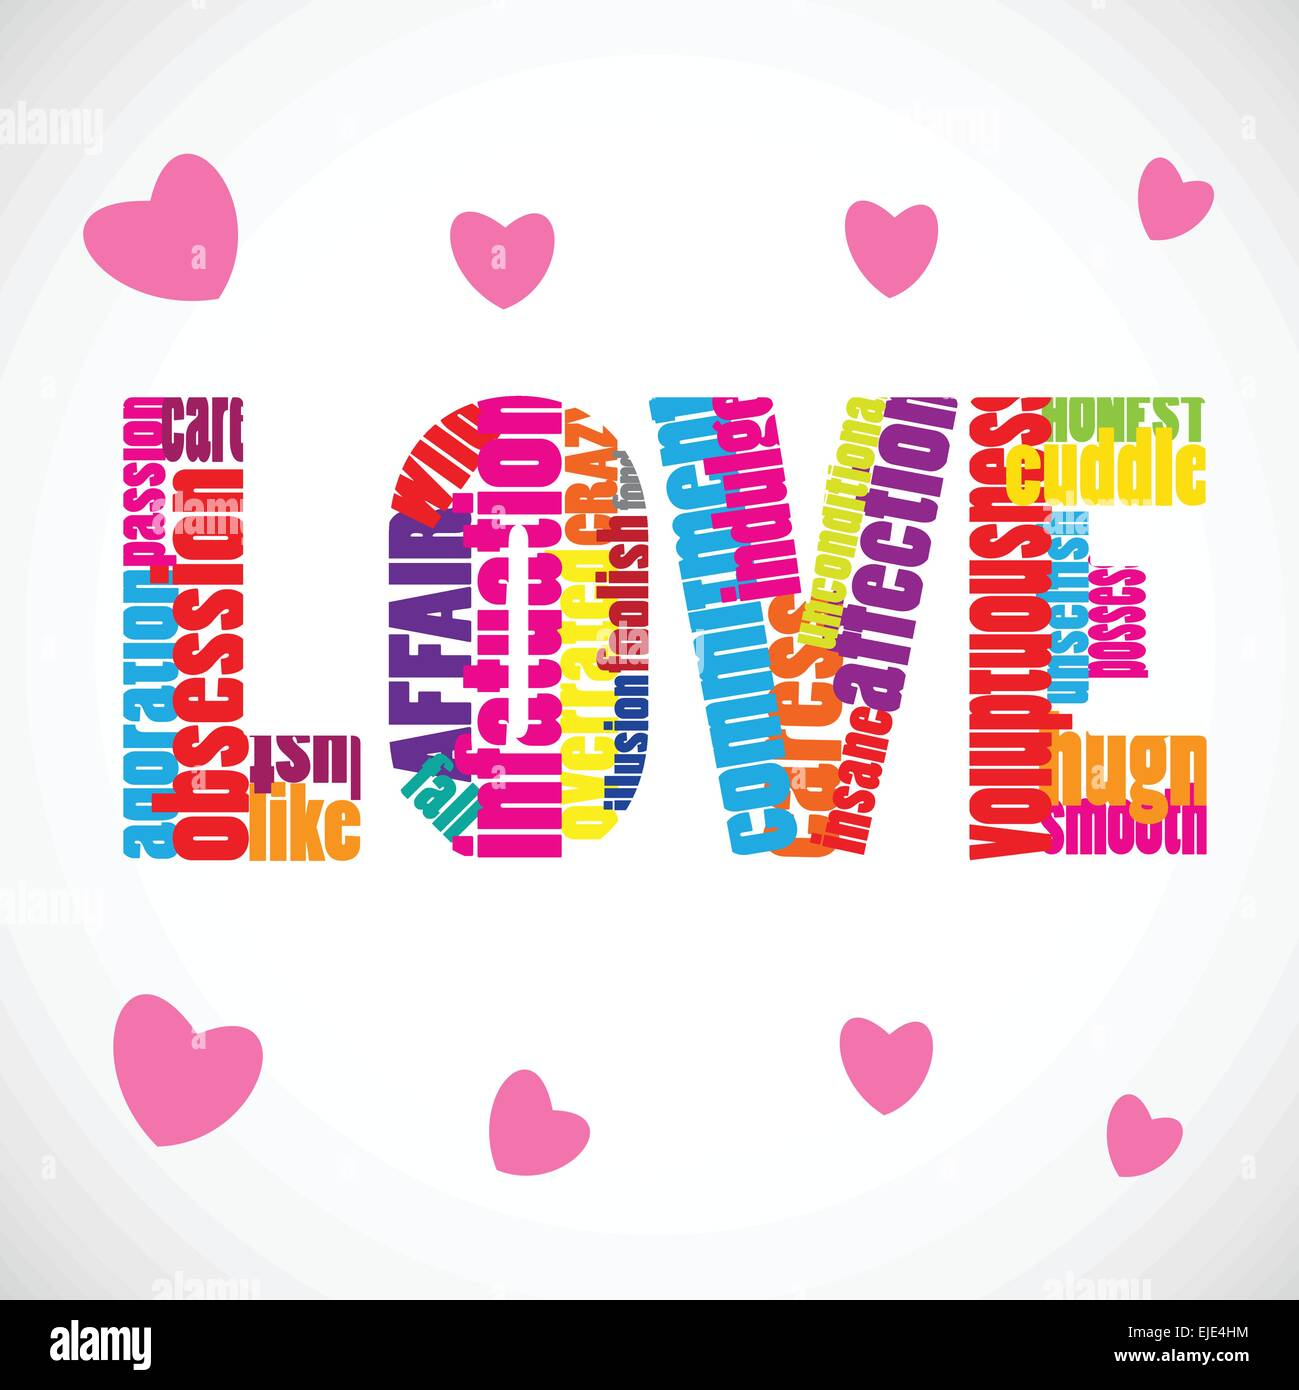 Love vector text with many related words and pink hearts. - Stock Image